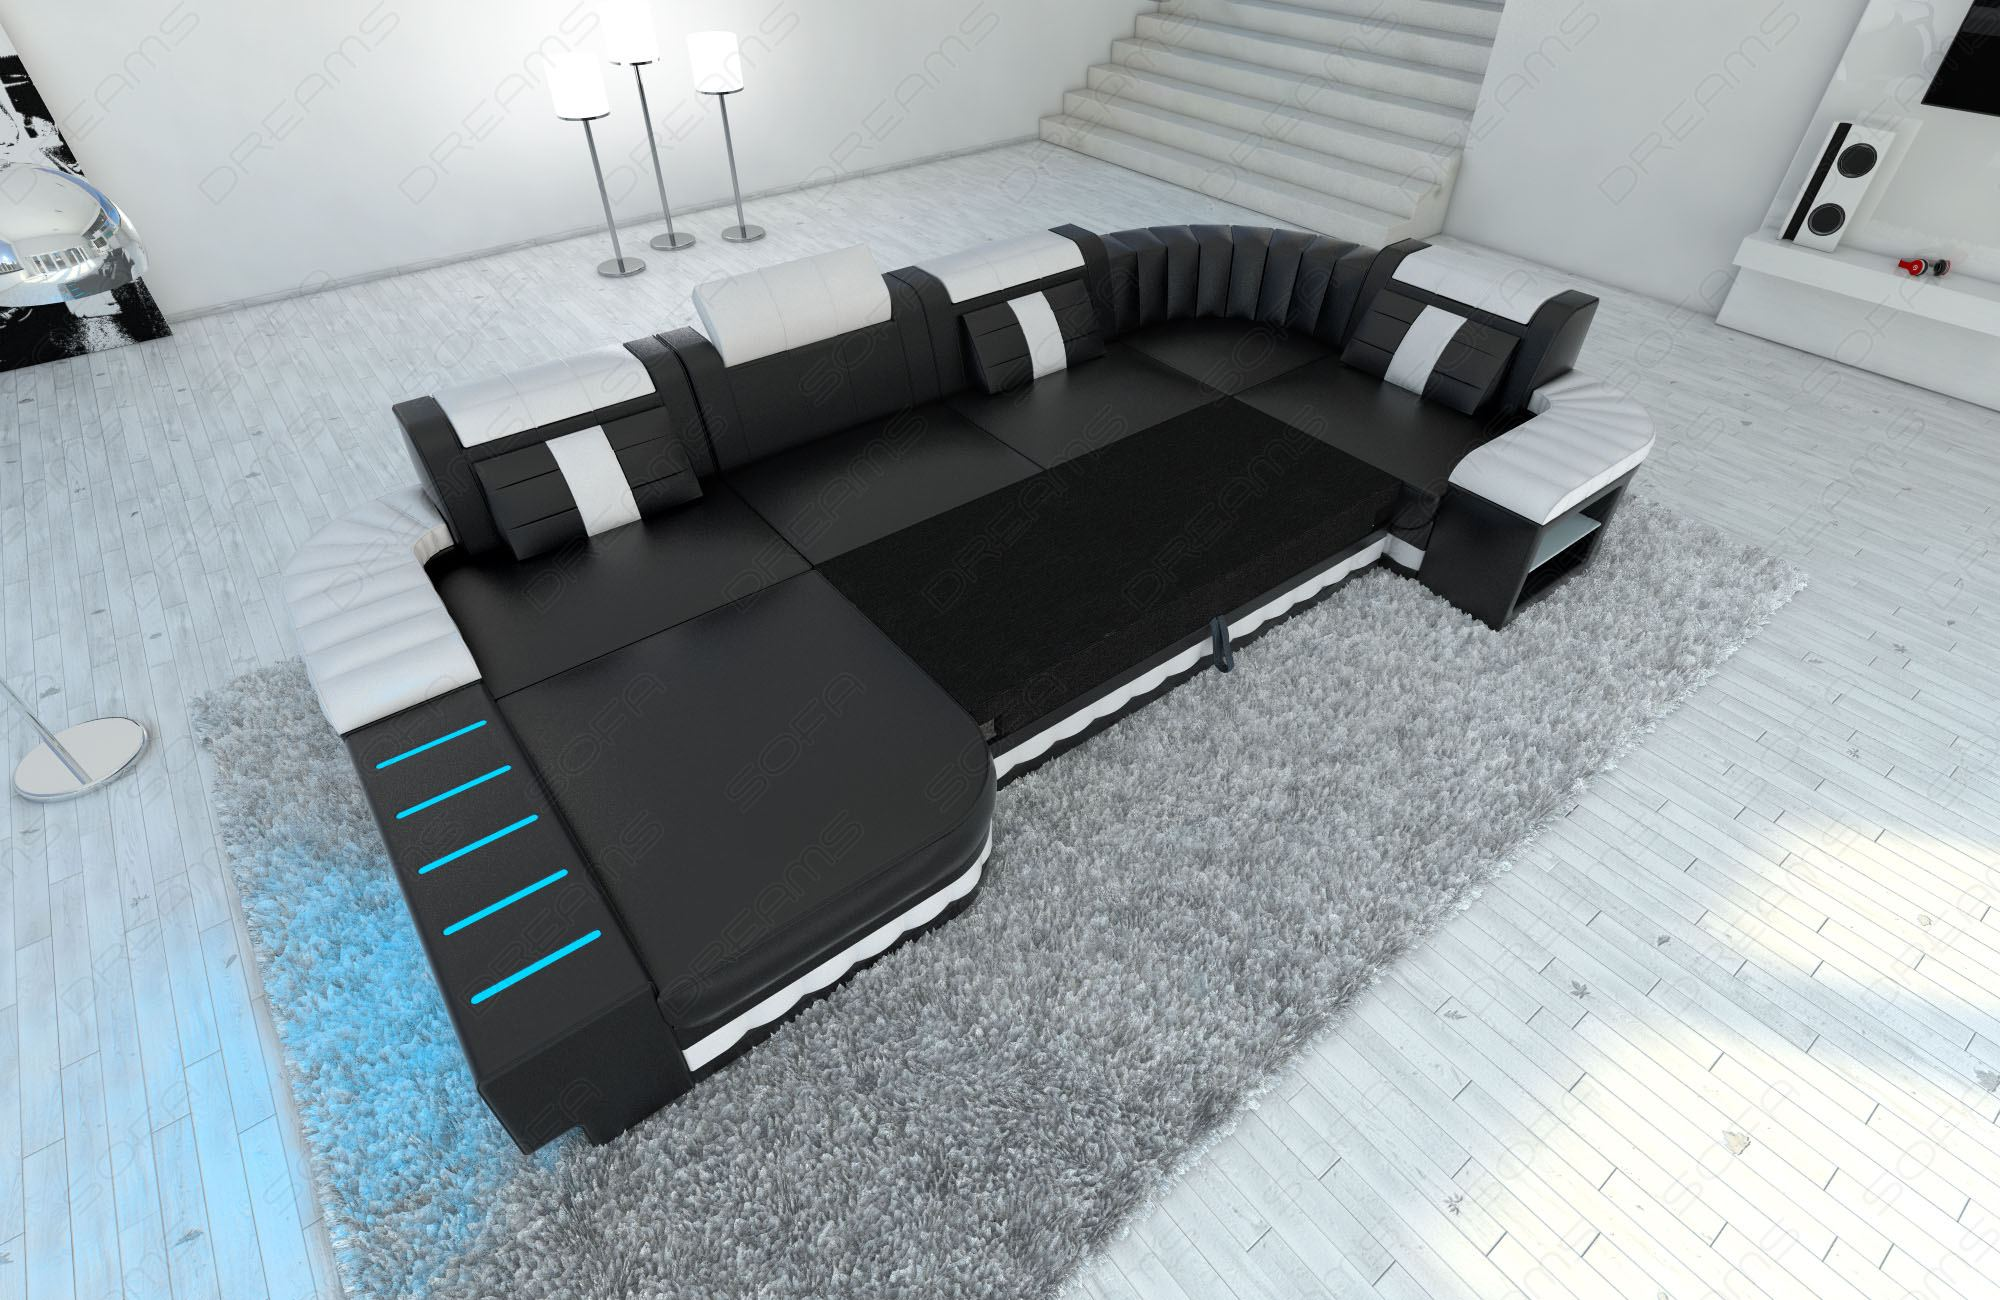 big upholstery fabric sofa bellagio u shape with led lights design sofa ebay. Black Bedroom Furniture Sets. Home Design Ideas